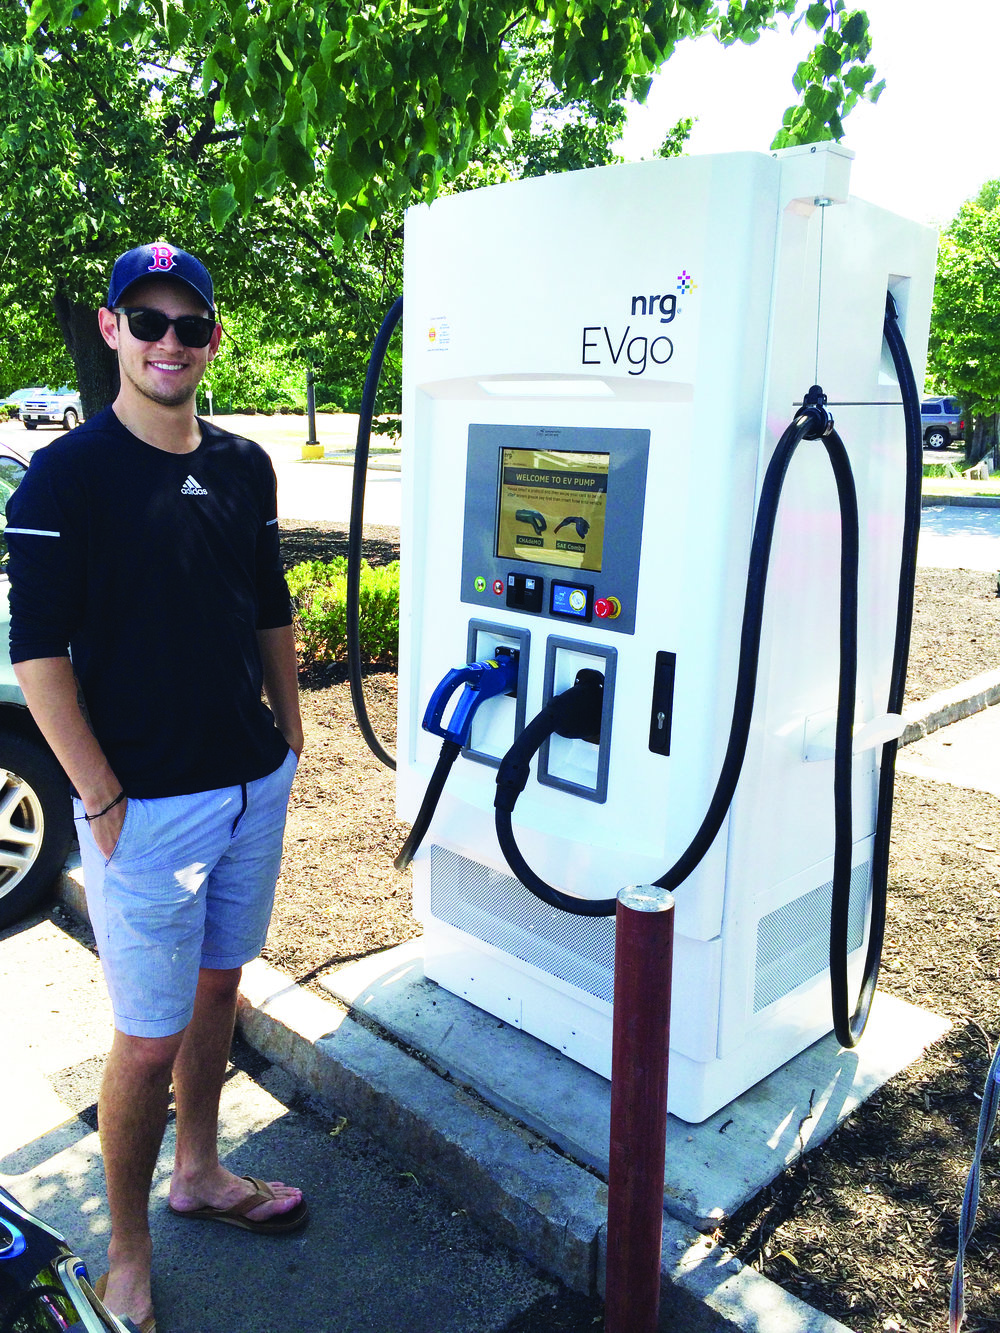 Hannaford partnered with Nissan and EVgo in 2016 to install five DC fast charging stations for electric vehicles, creating what is the first fast charging network in Maine. Customers can plug in to recharge while doing their grocery shopping.